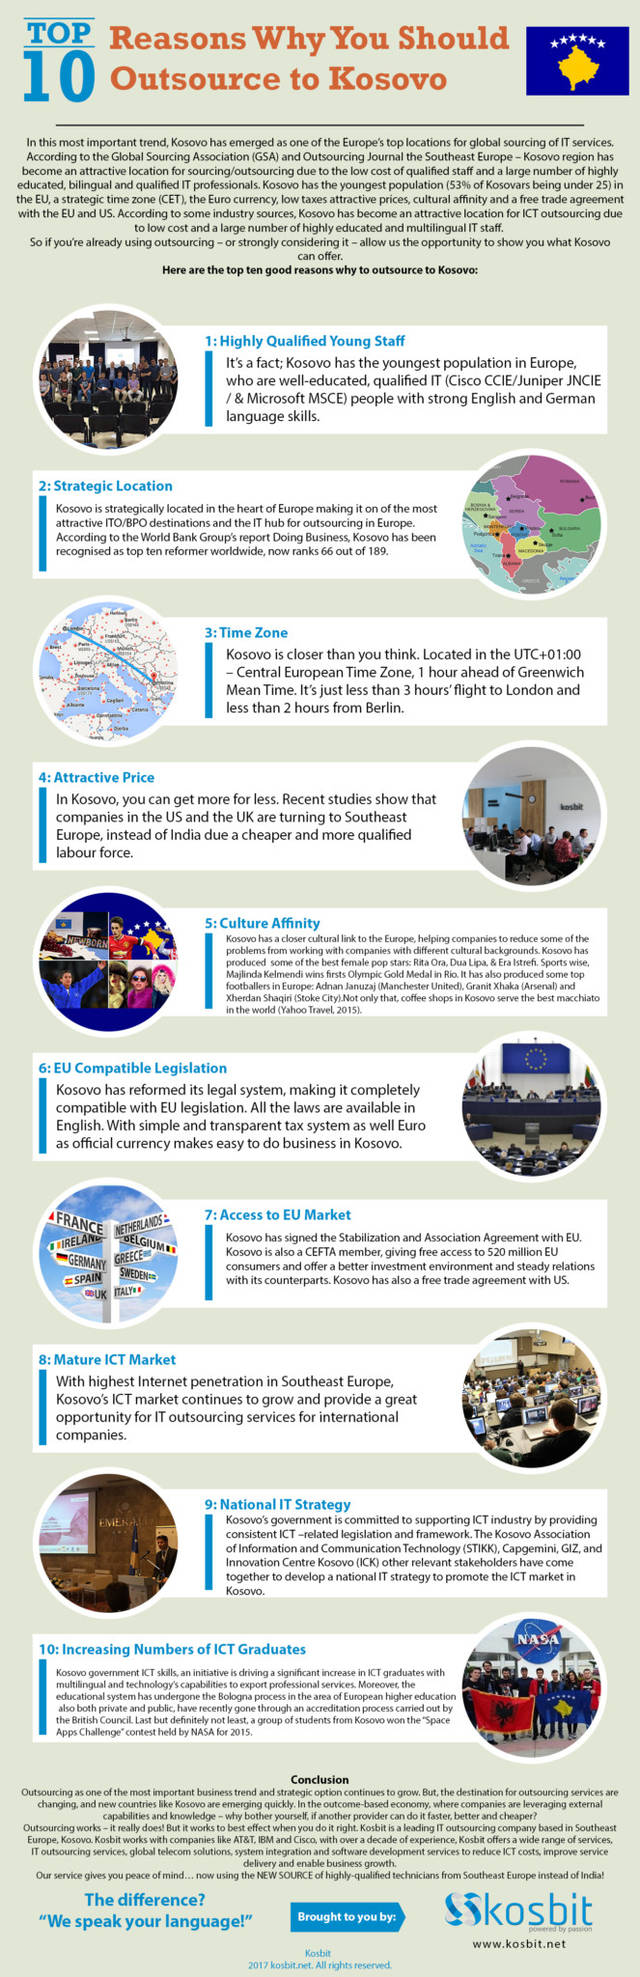 Top 10 reasons why you should outsource to kosovo kosbit infographic